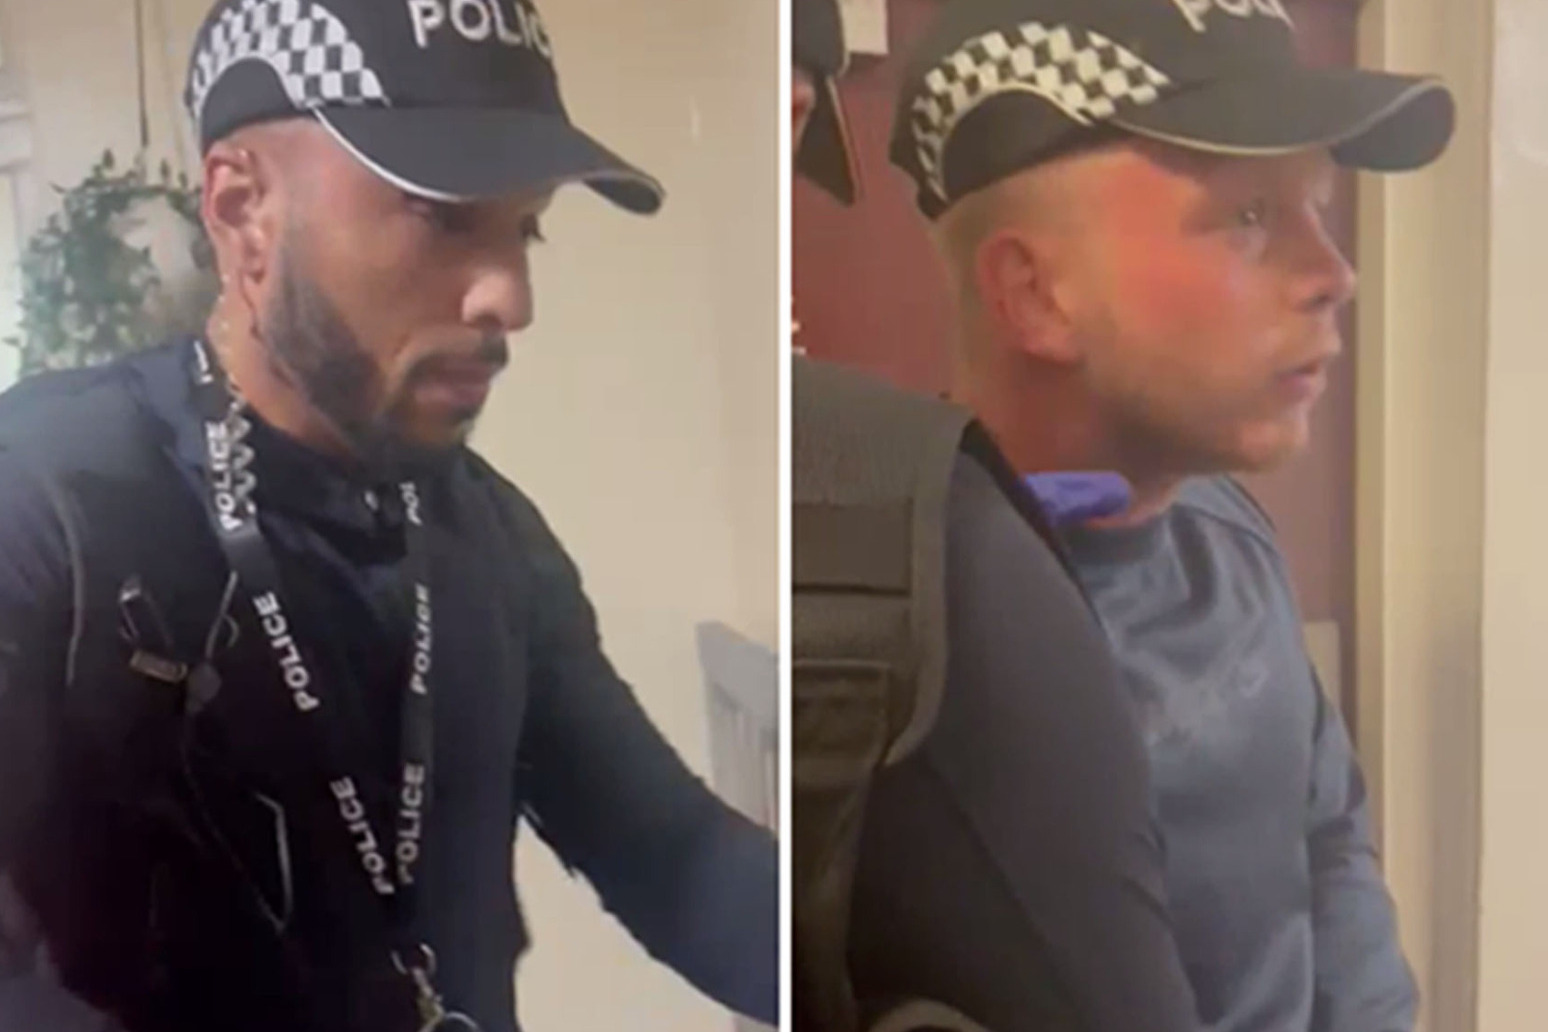 Detectives seek two men thought to have impersonated police officers